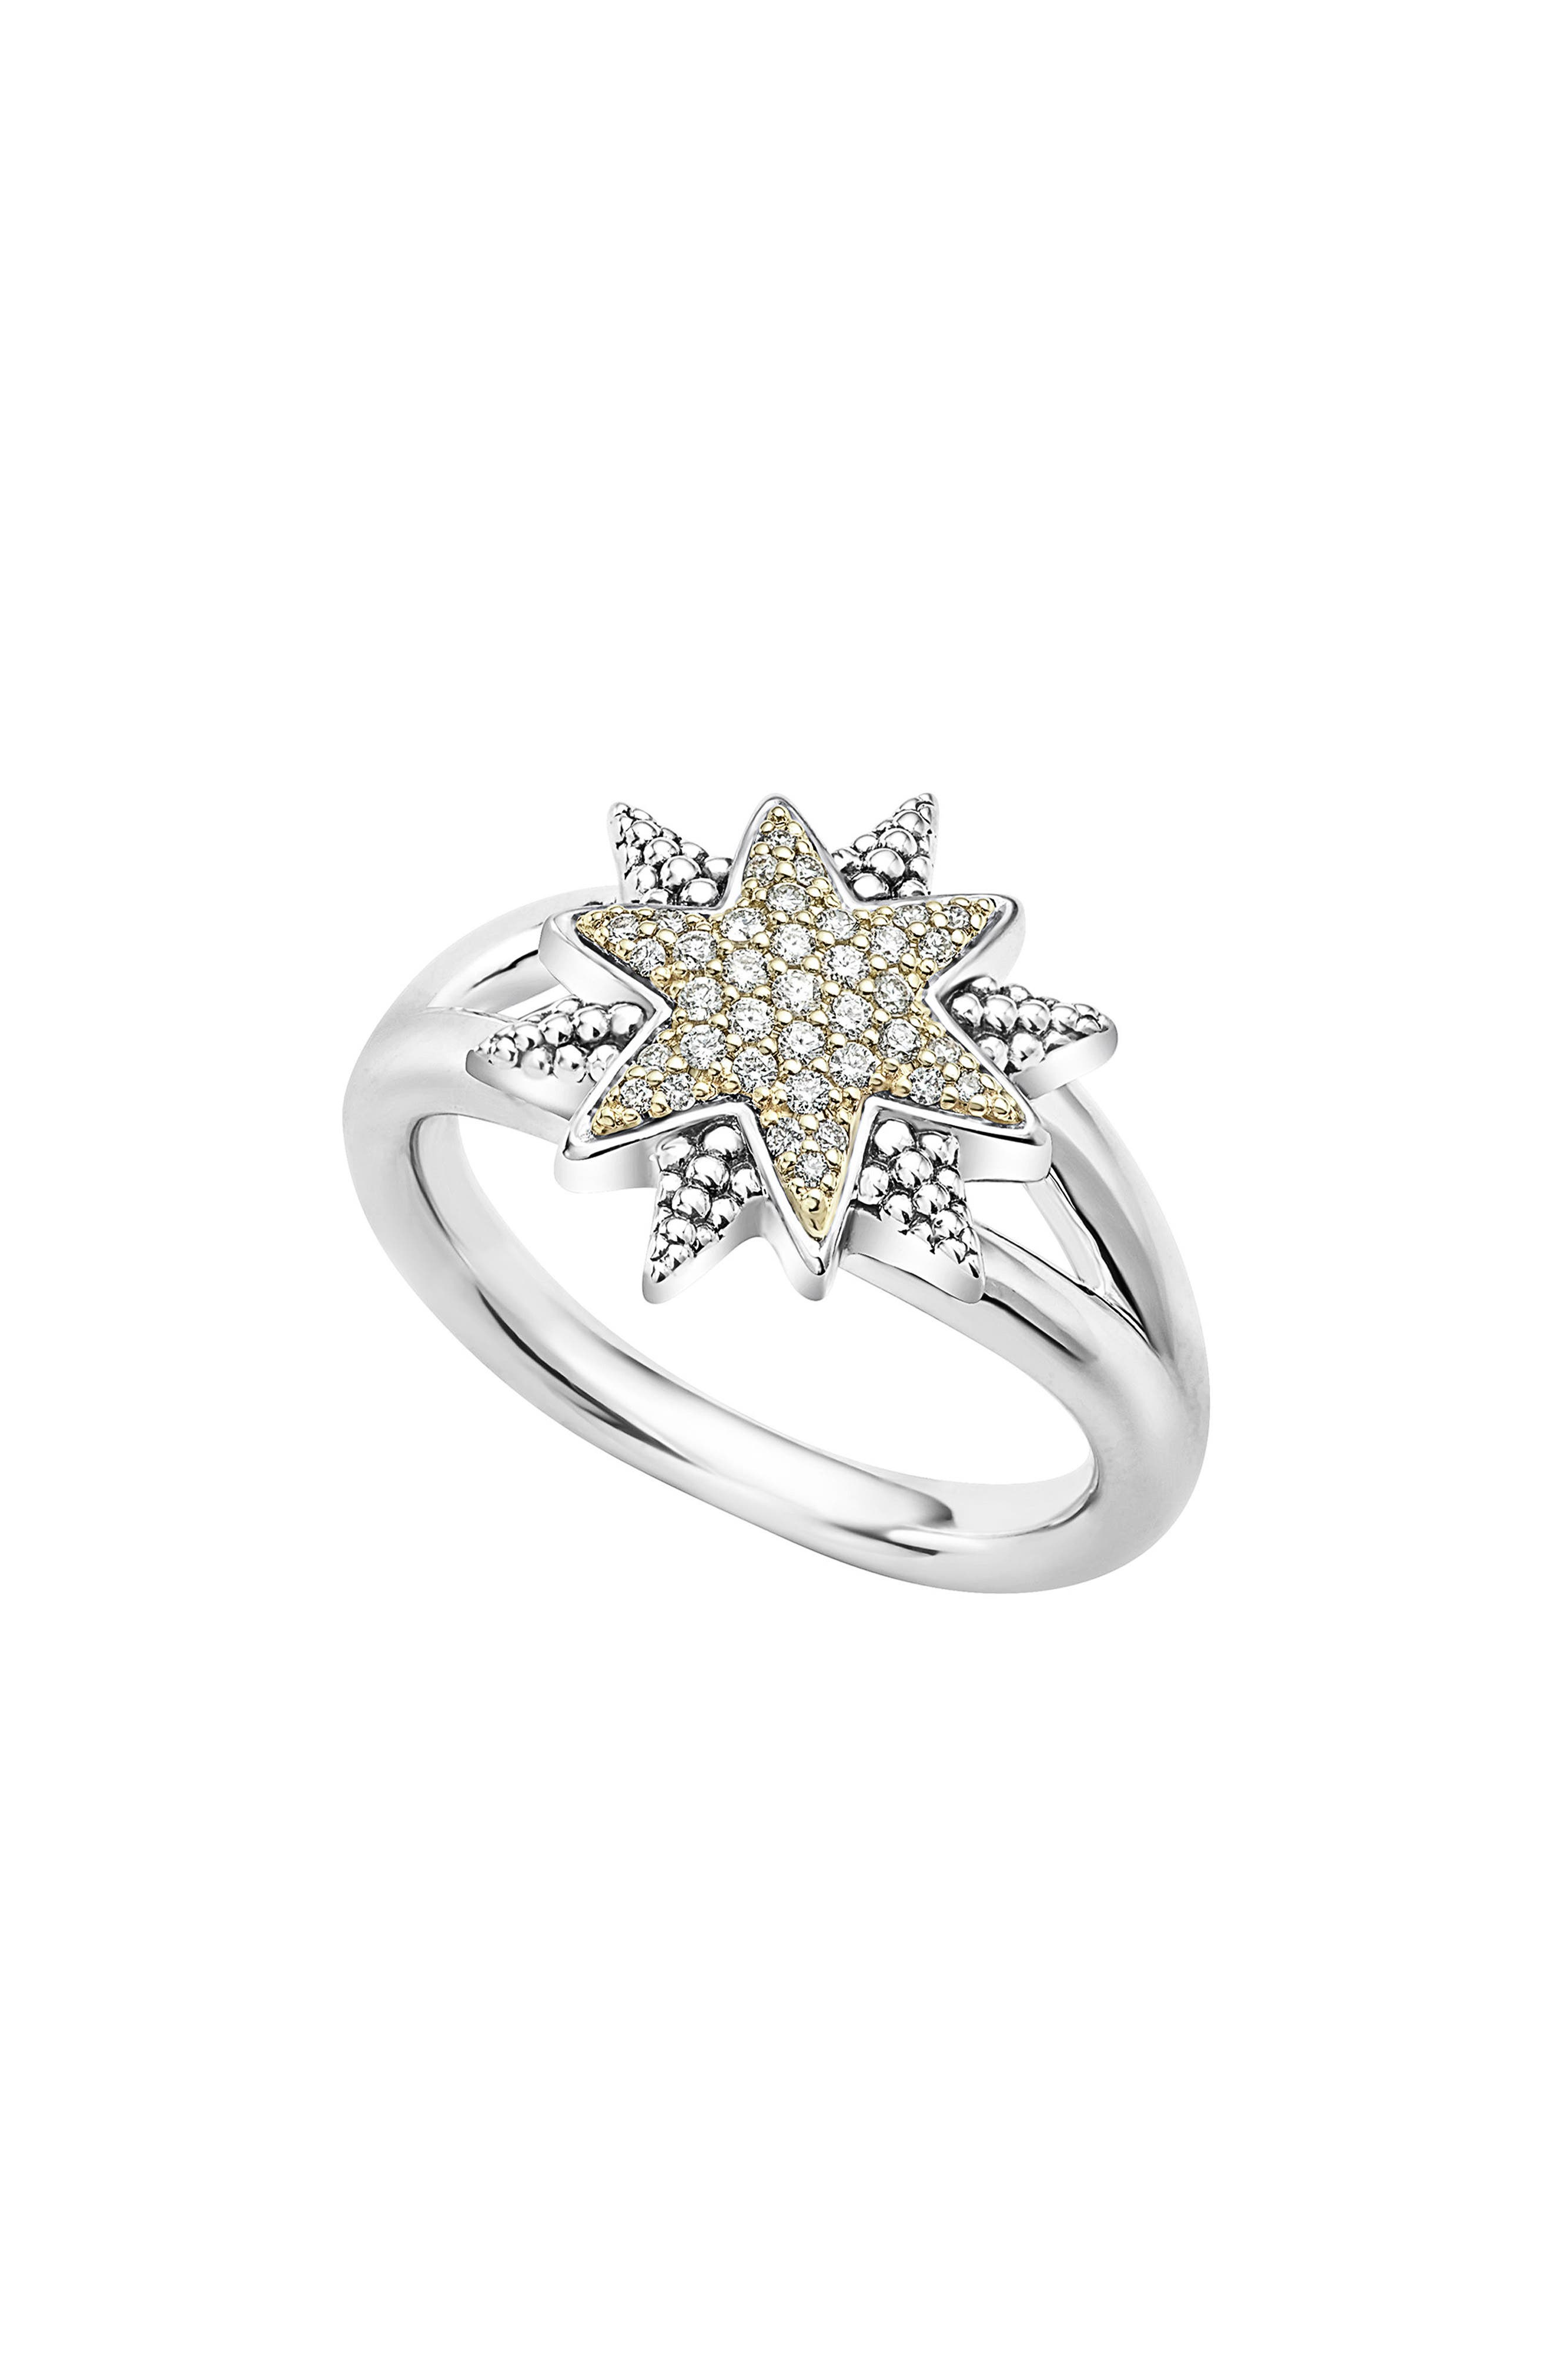 North Star Ring,                         Main,                         color, Diamond